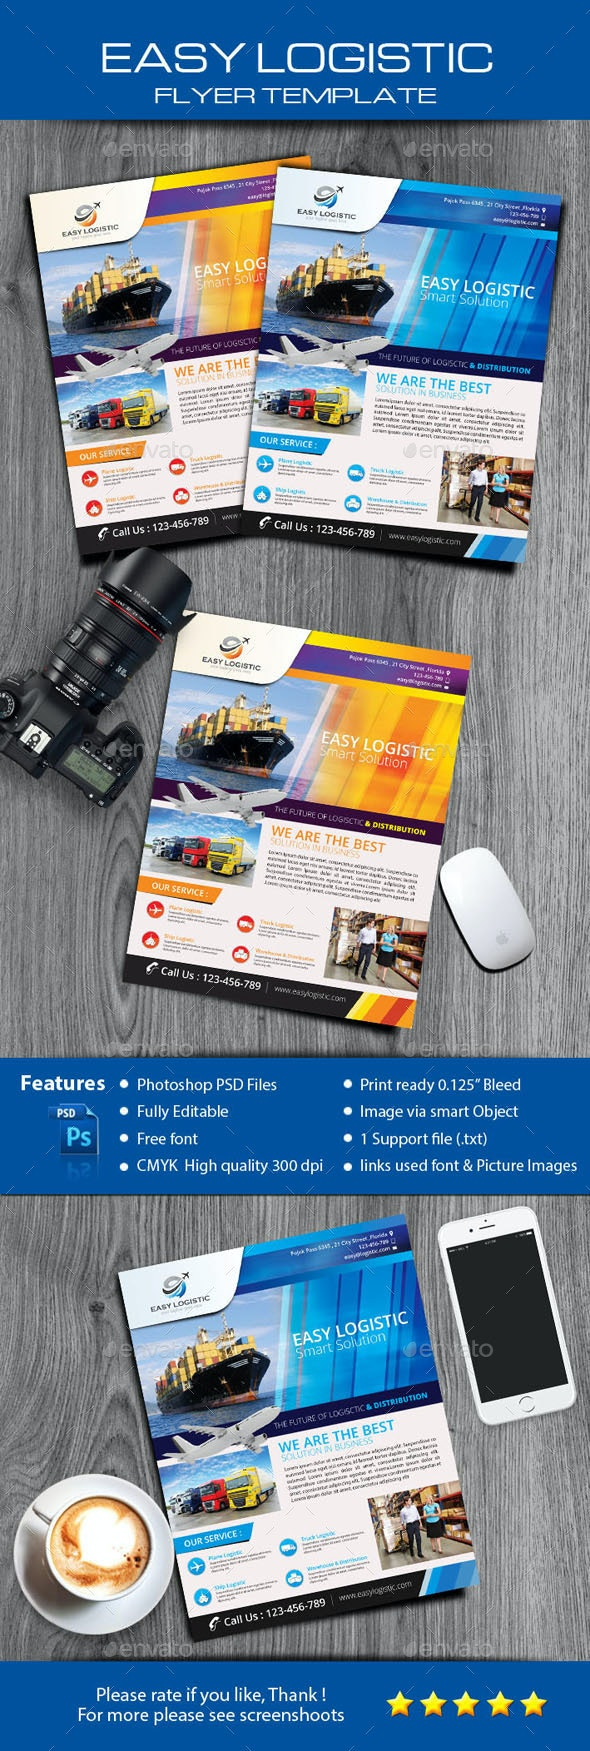 Easy Logistic Smart Solution Flyer - Corporate Flyers